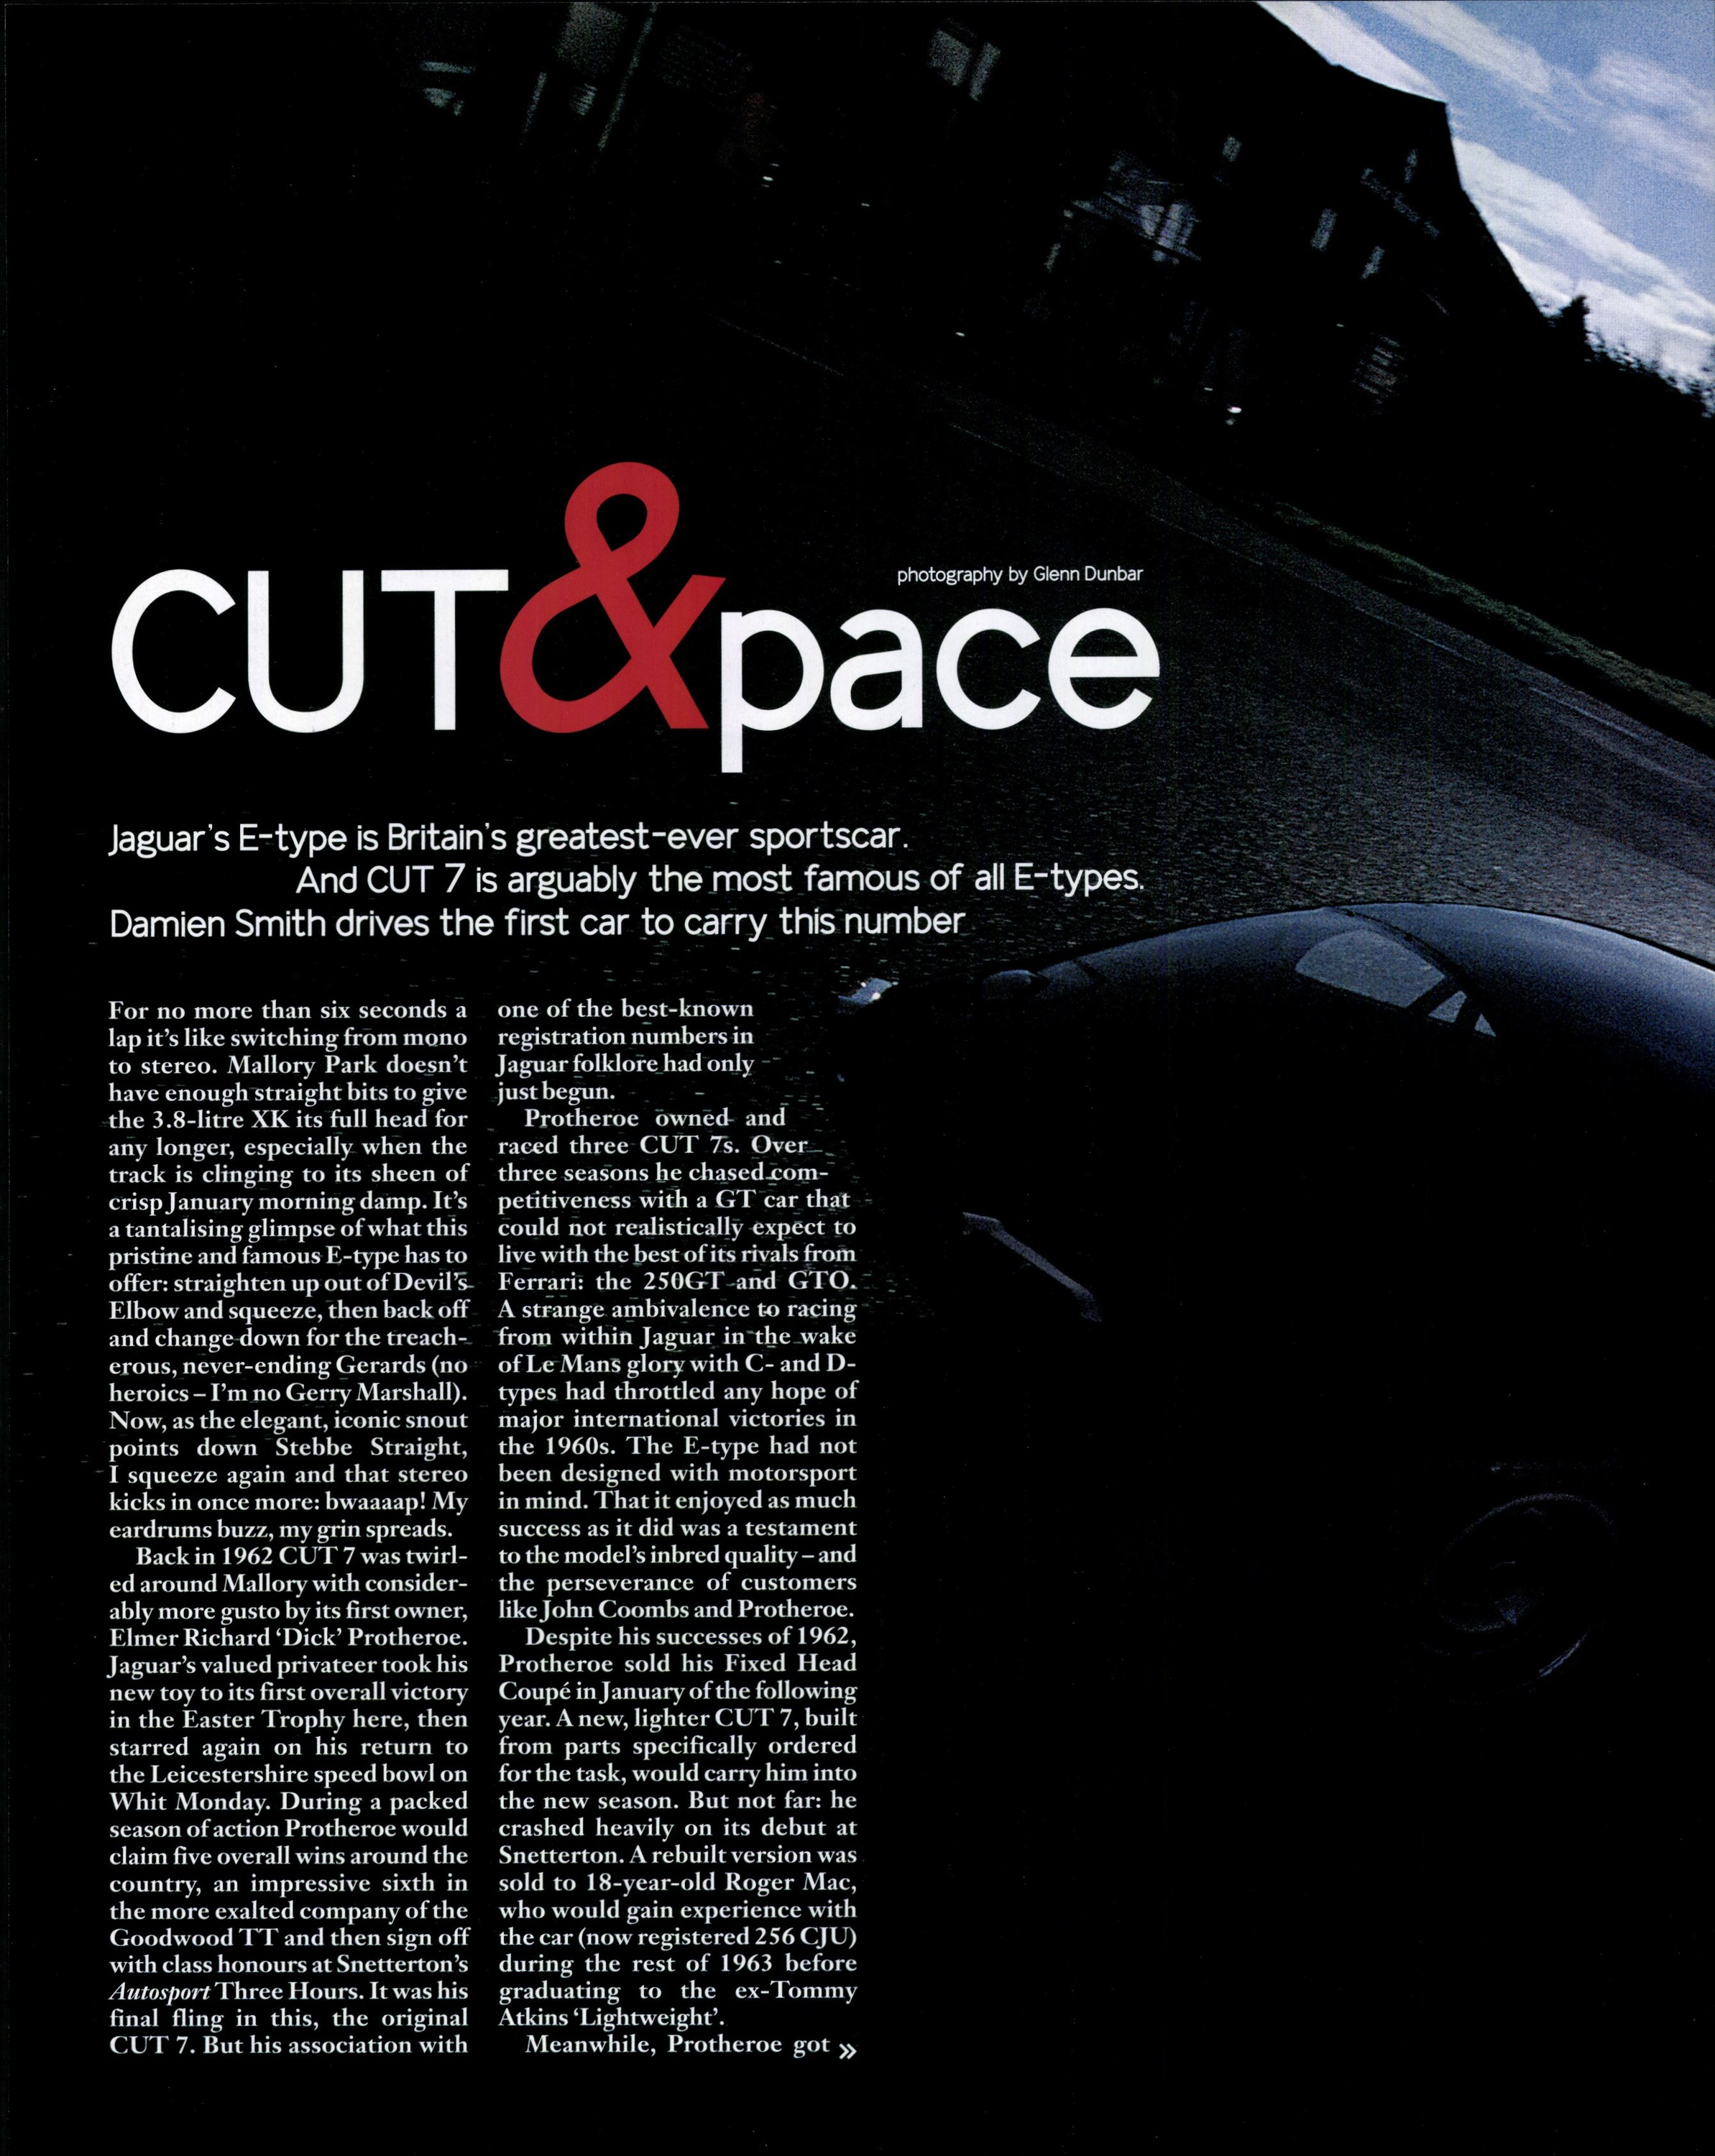 cut and pace image